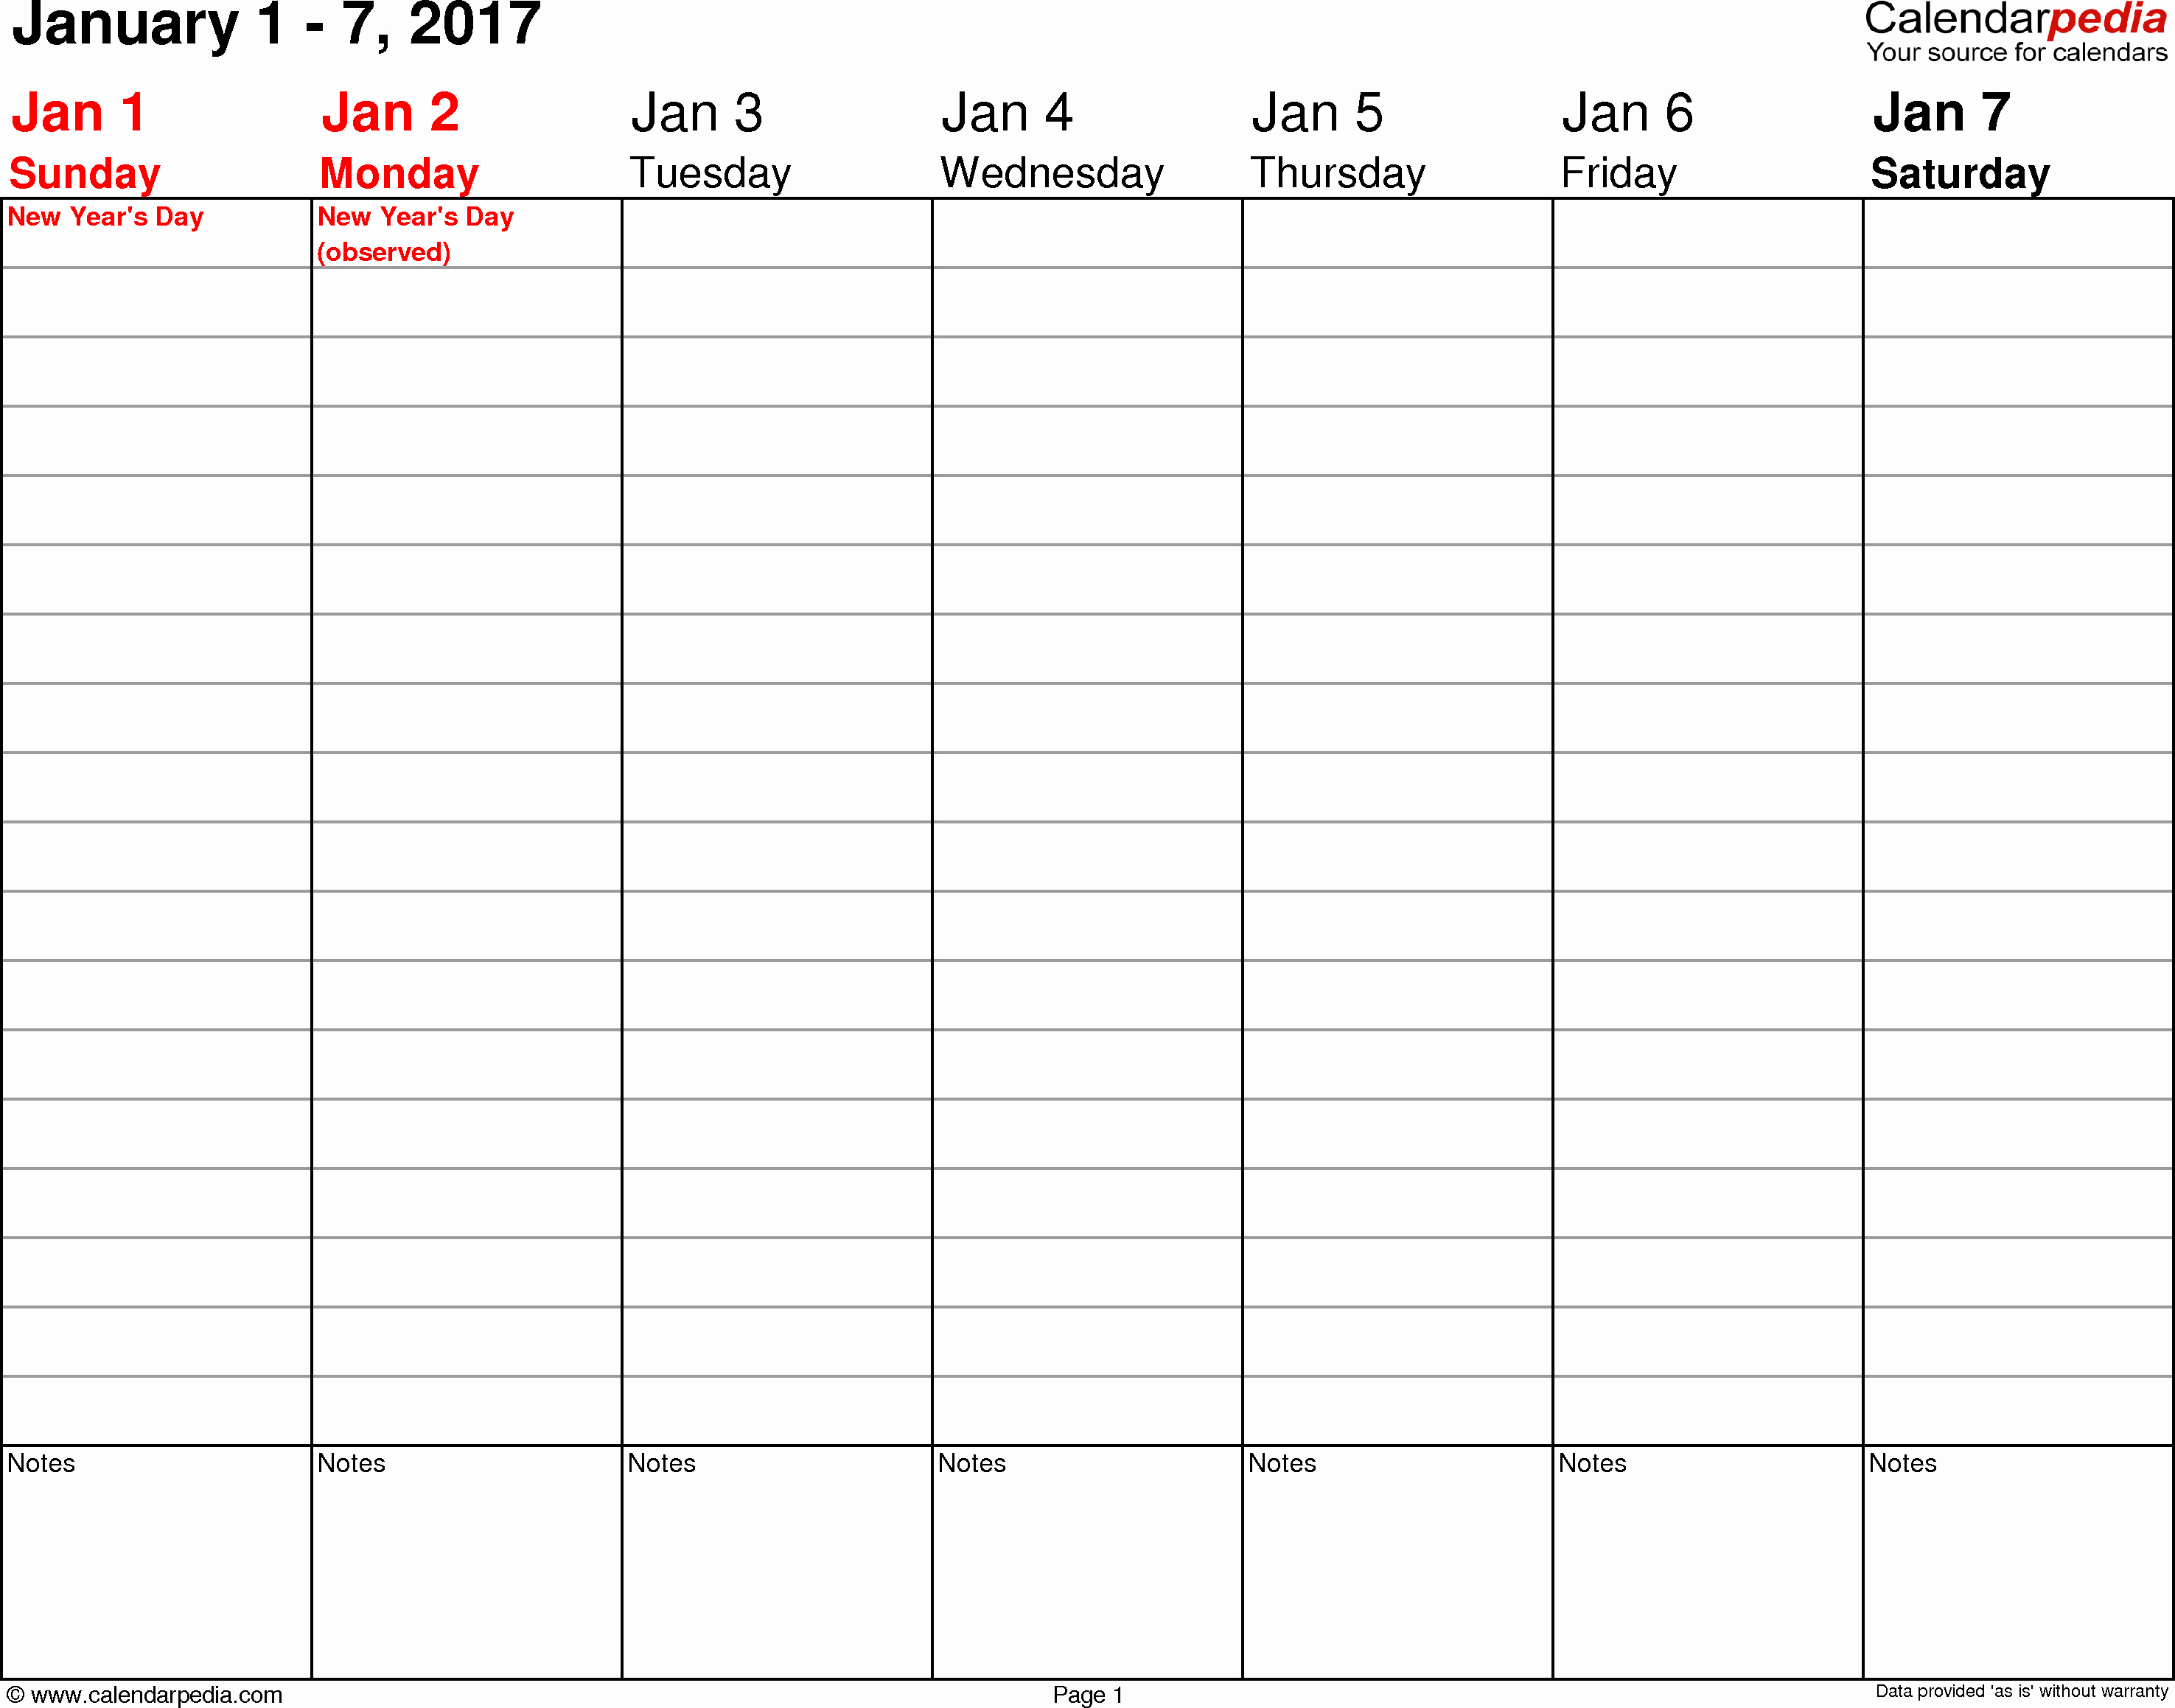 Free Printable Weekly Calendars 2017 Unique Weekly Calendar 2017 for Pdf 12 Free Printable Templates